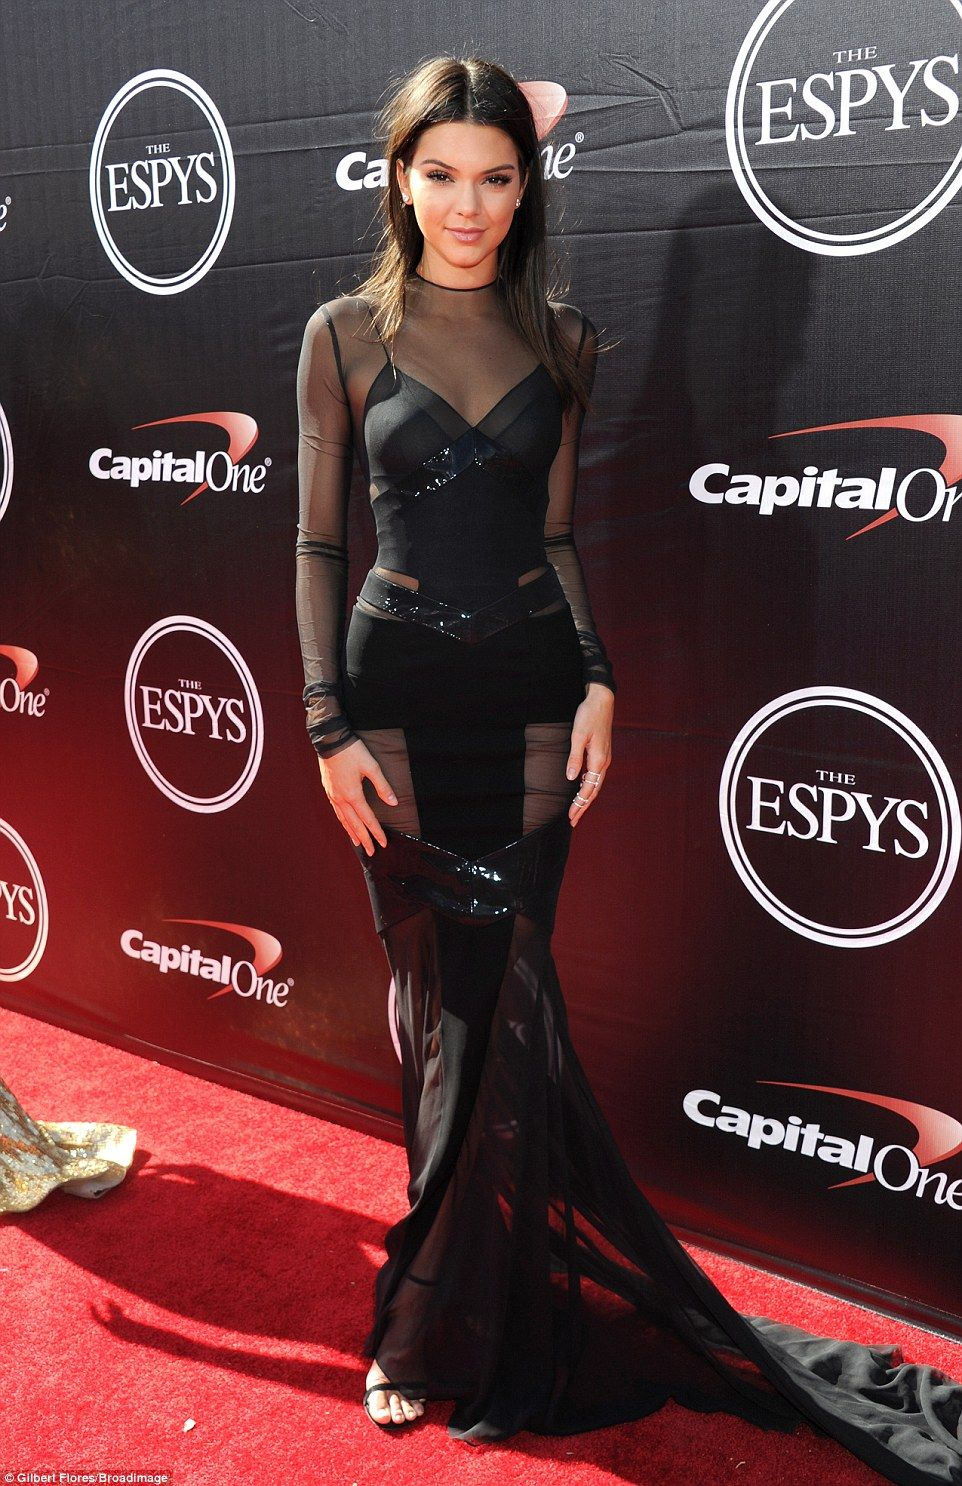 589017d99b9 ESPY Awards 2015 - Kendall Jenner in Alexandre Vauthier Haute Couture -  July 15